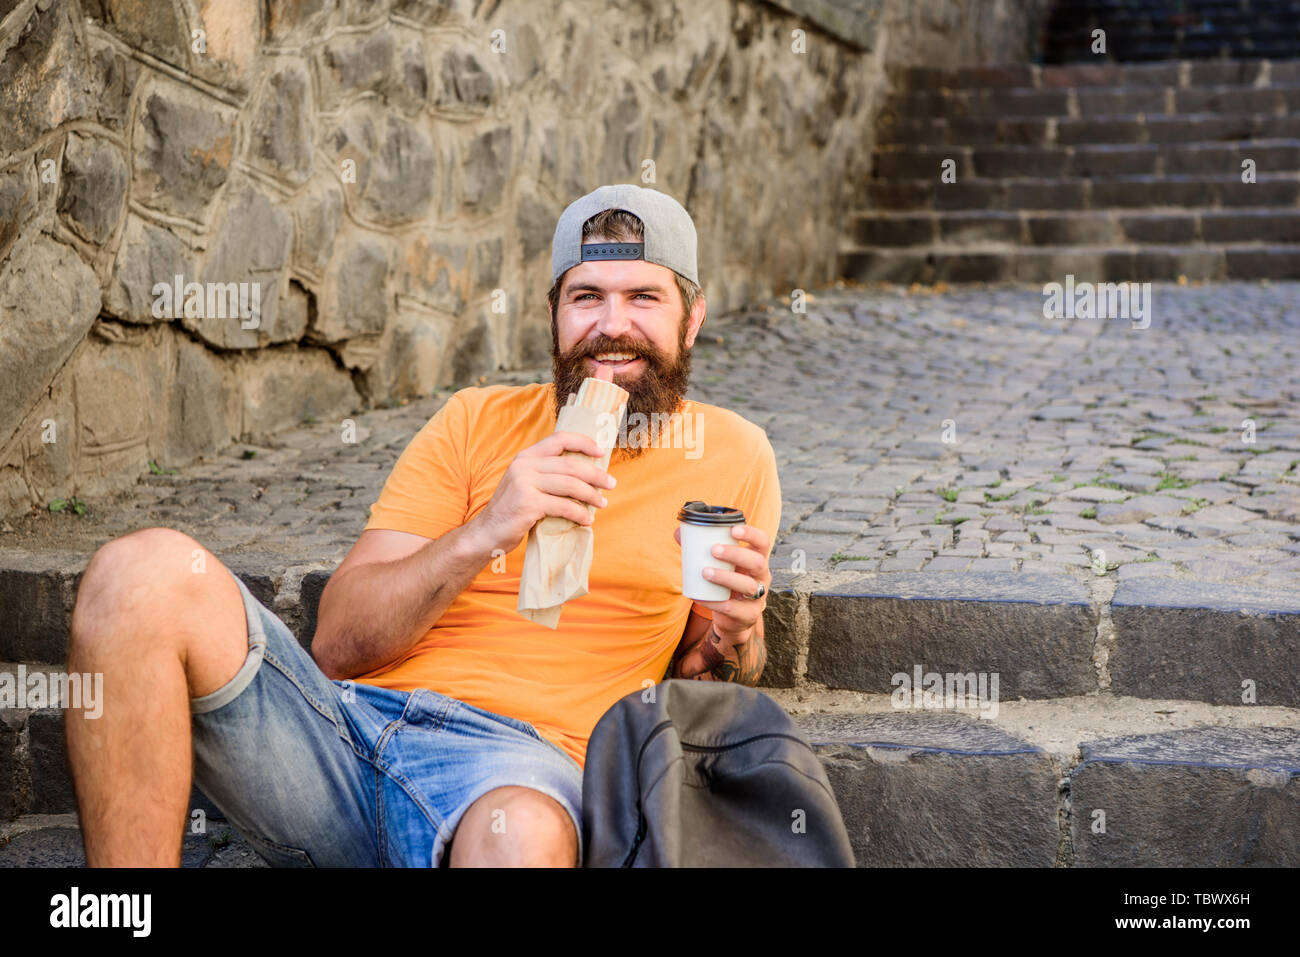 Hungry man snack. Junk food. Guy eating hot dog. Man bearded enjoy quick snack and drink paper cup. Street food so good. Urban lifestyle nutrition. Carefree hipster eat junk food while sit on stairs. - Stock Image